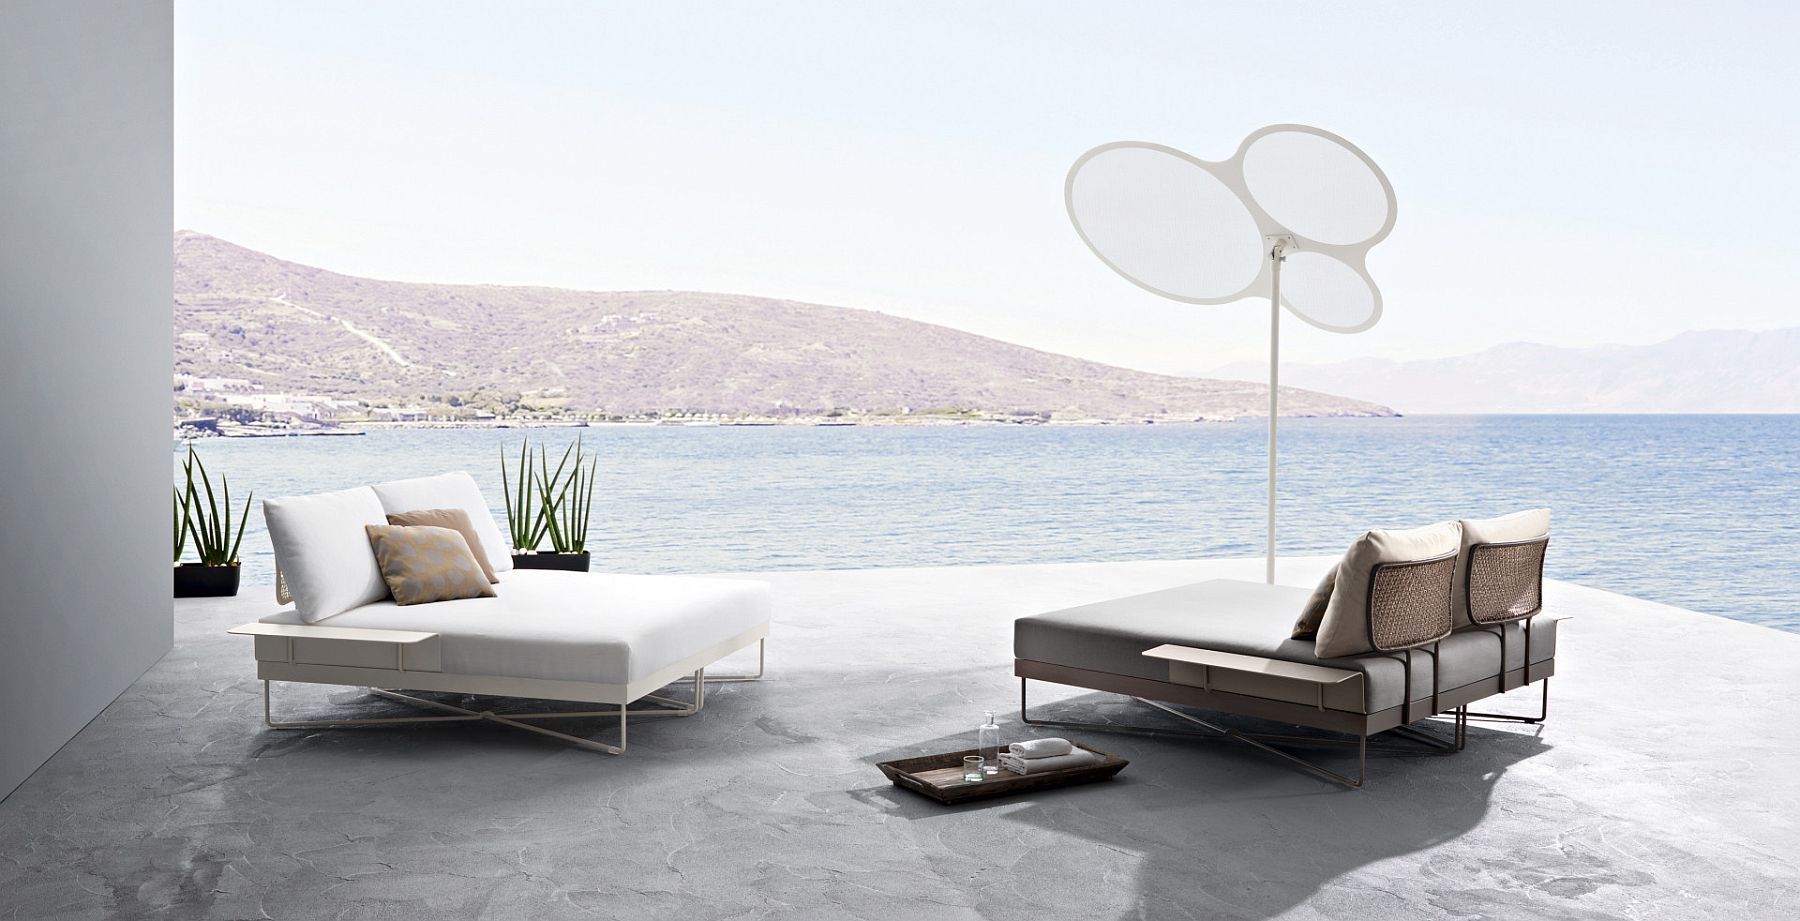 Minimal And Sophisticated Outdoor Furniture Collection With